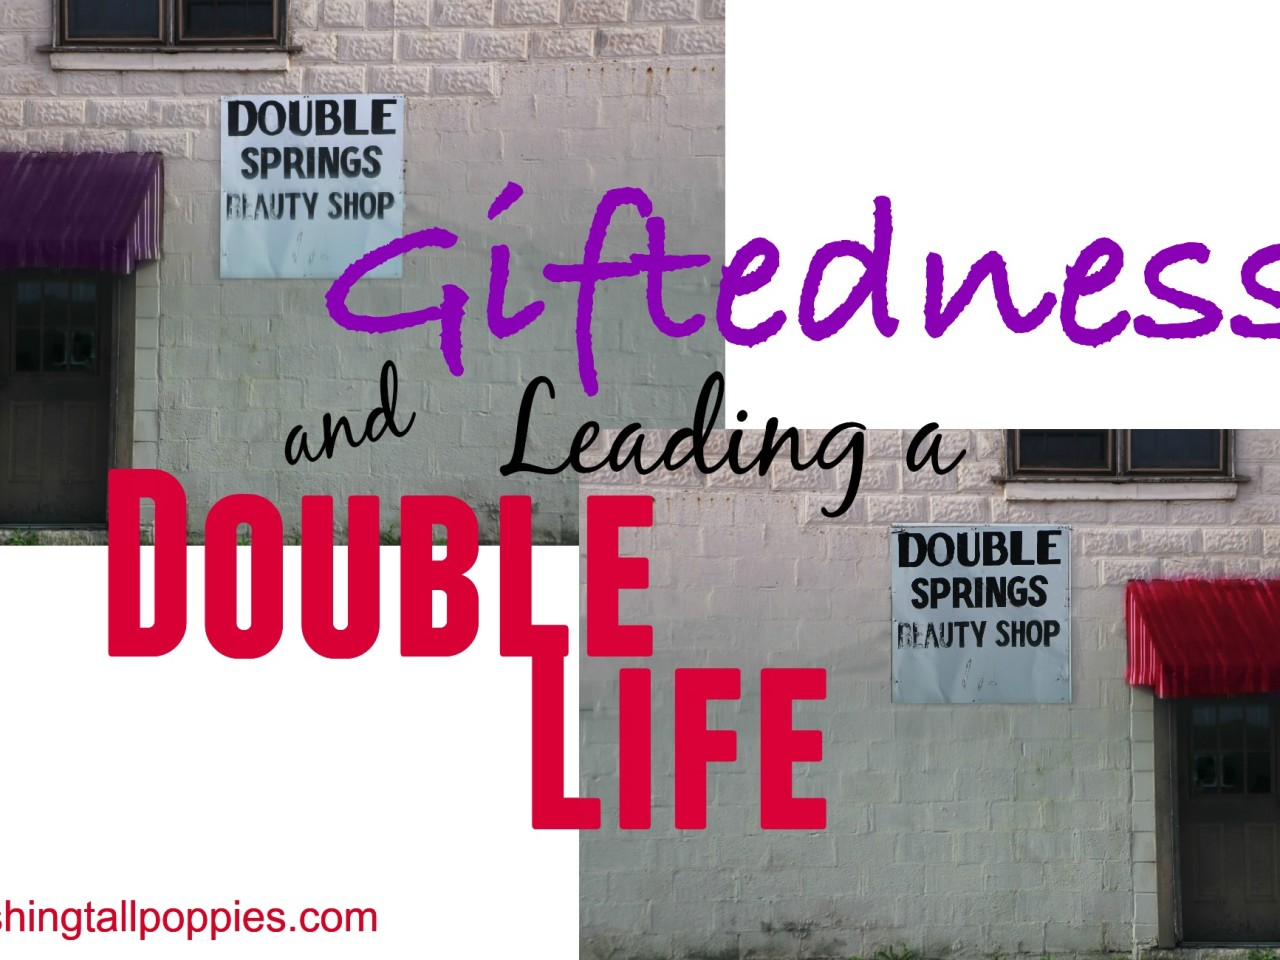 Giftedness and Leading a Double Life